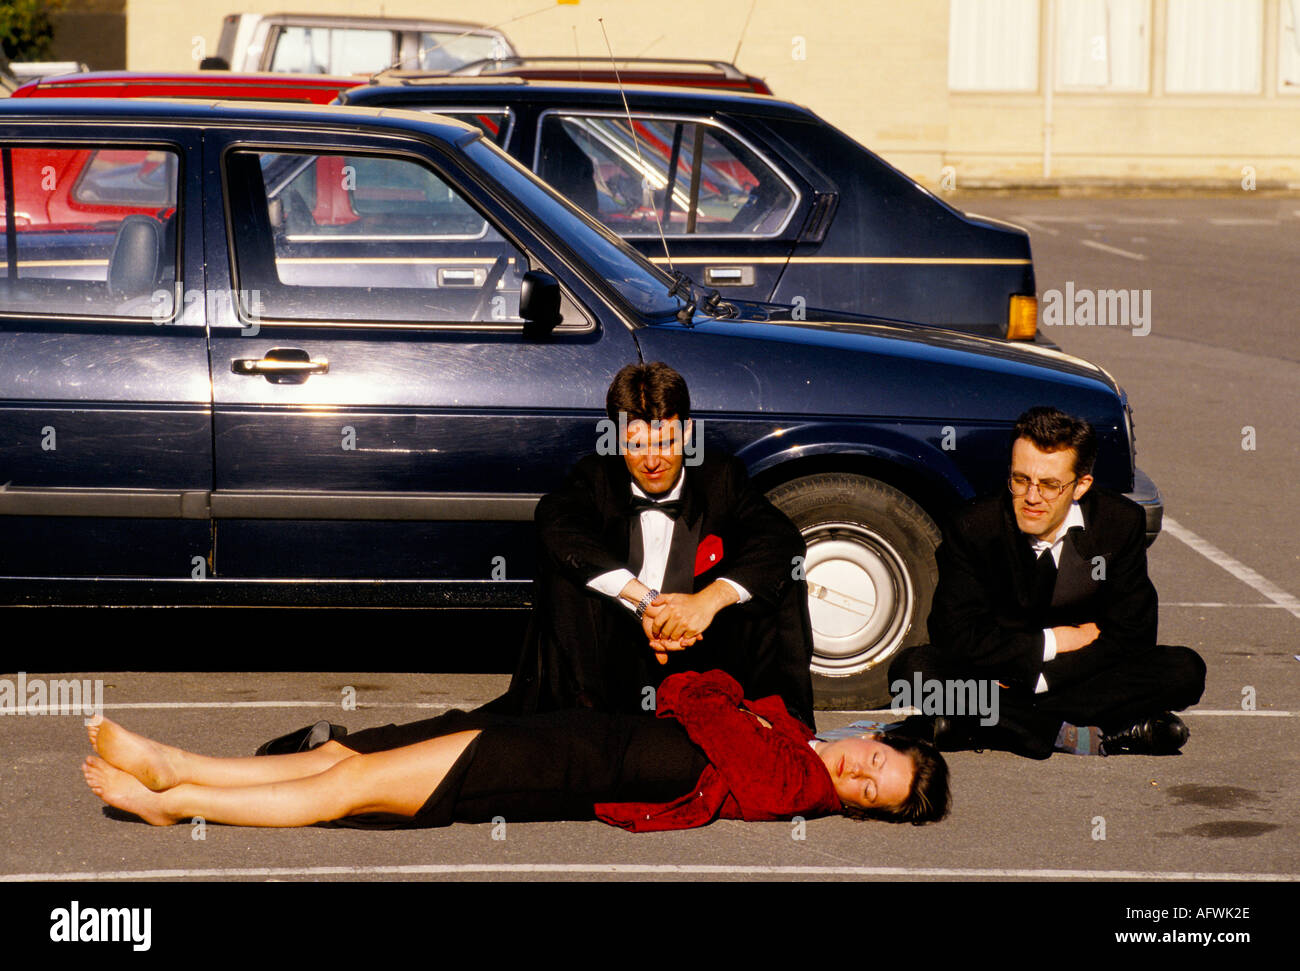 MEN WATCH OVER FEMALE COMPANION LYING ASLEEP CAR PARK AT MAY BALL ROYAL AGRICULTURAL COLLEGE .  1980s UK  HOMER SYKES - Stock Image